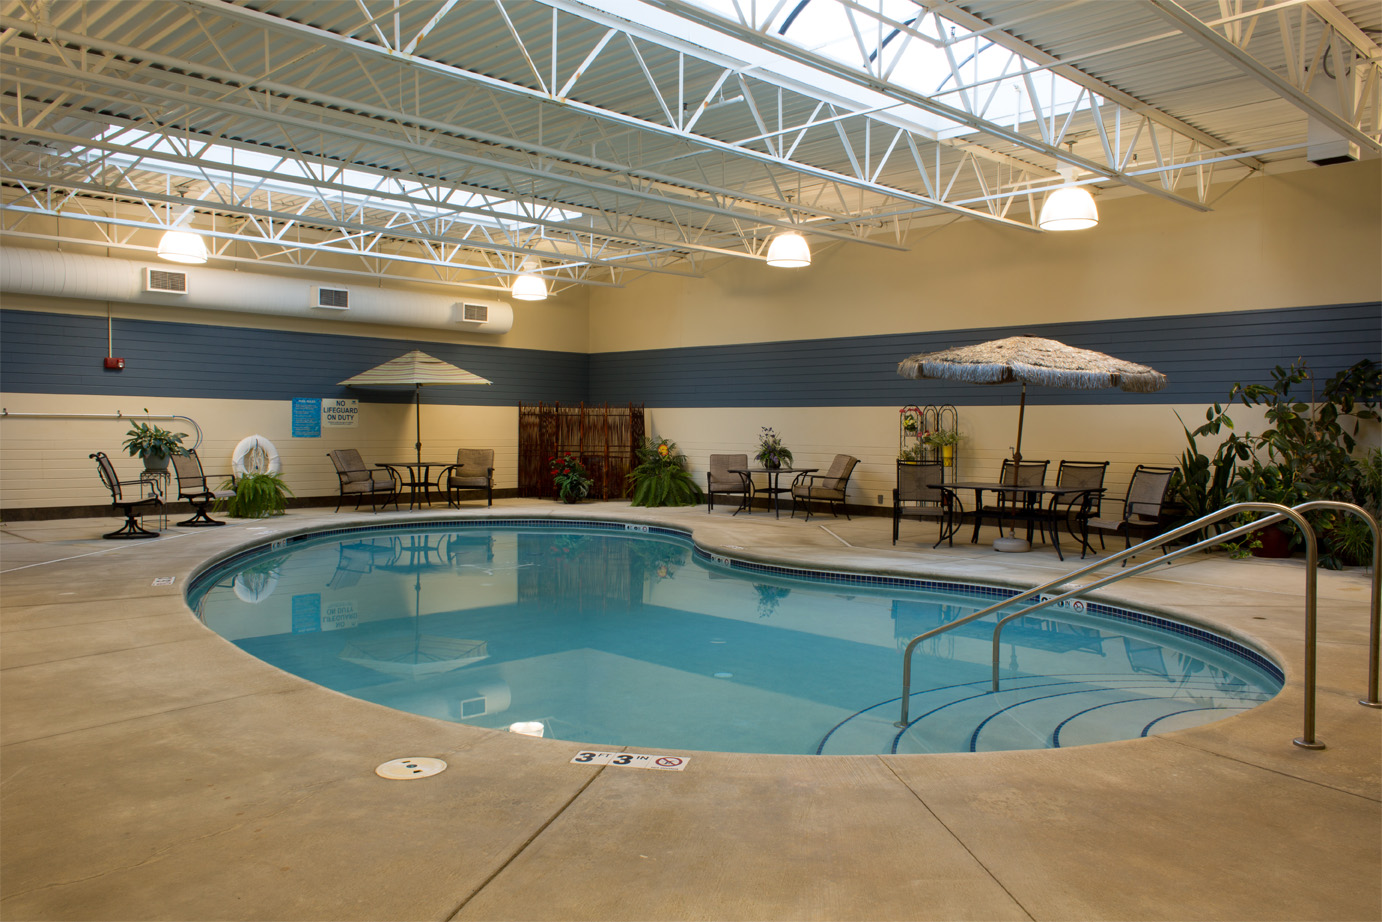 Independent retirement living waterloo iowa bridges for Waterloo rec centre swimming pool